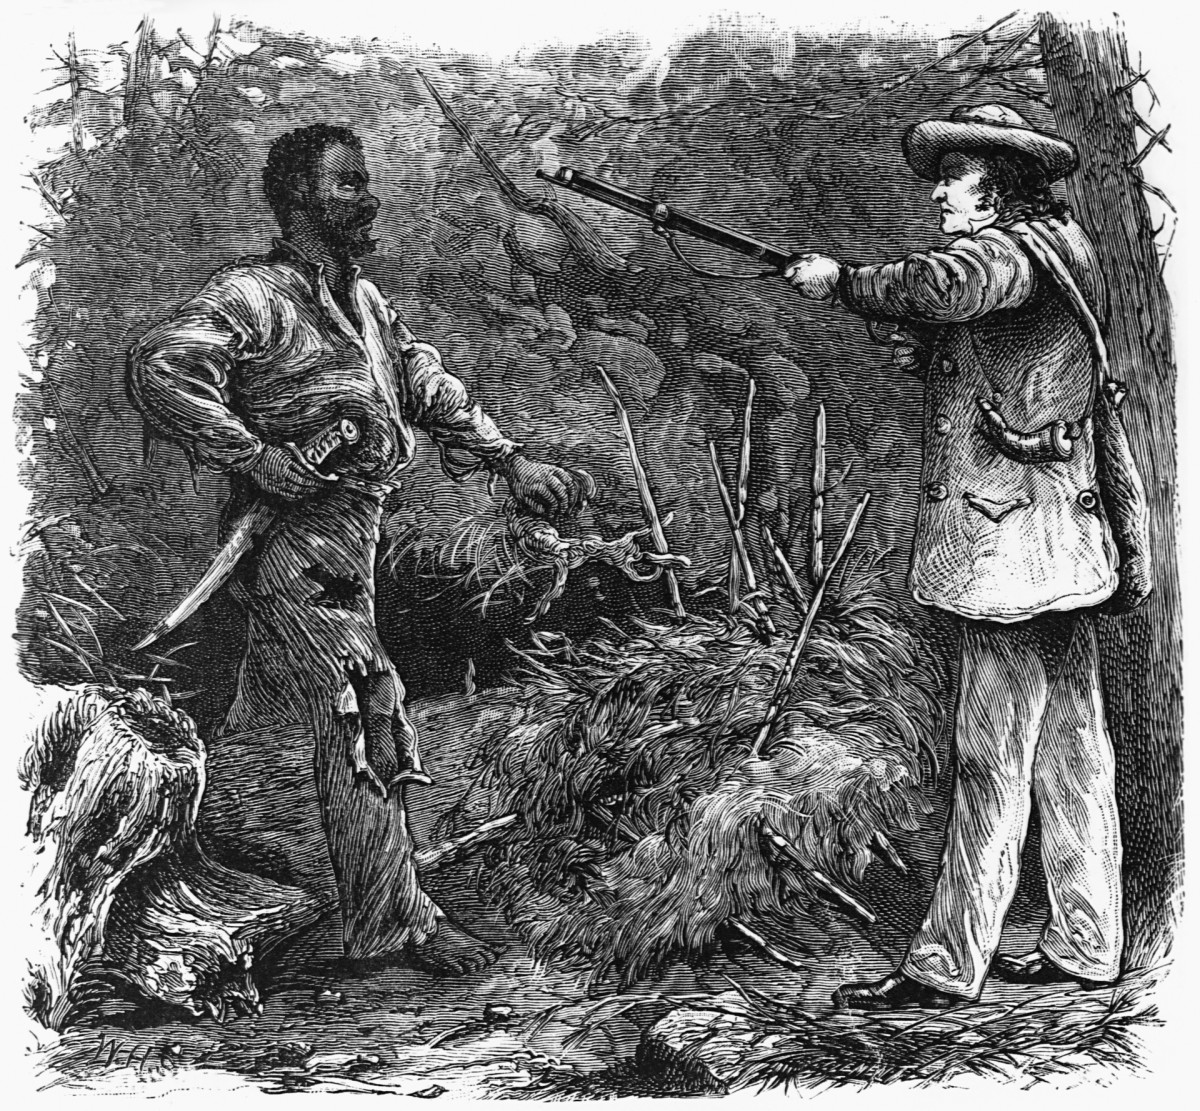 Nat Turner (1800-1831) accosted in the forest by a man hunting for black people seeking freedom.